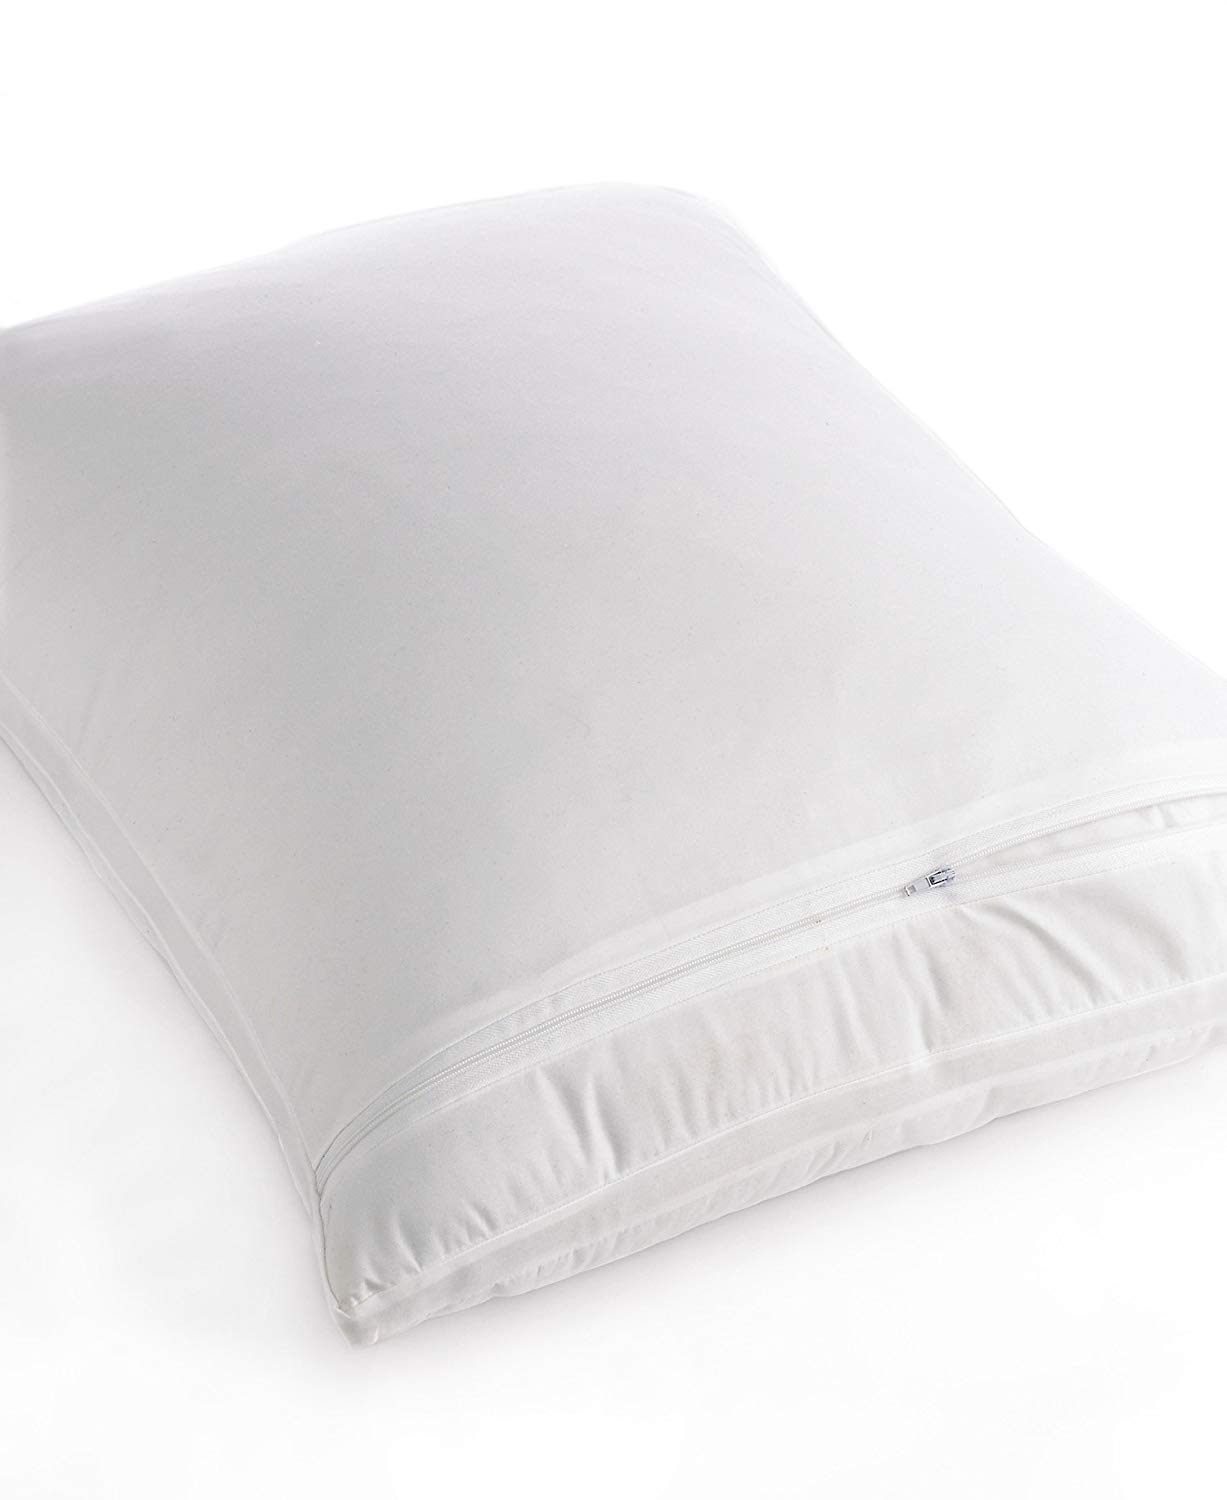 Martha Stewart Collection Bedding, Bed Bug Standard/Queen Pillow Protector White